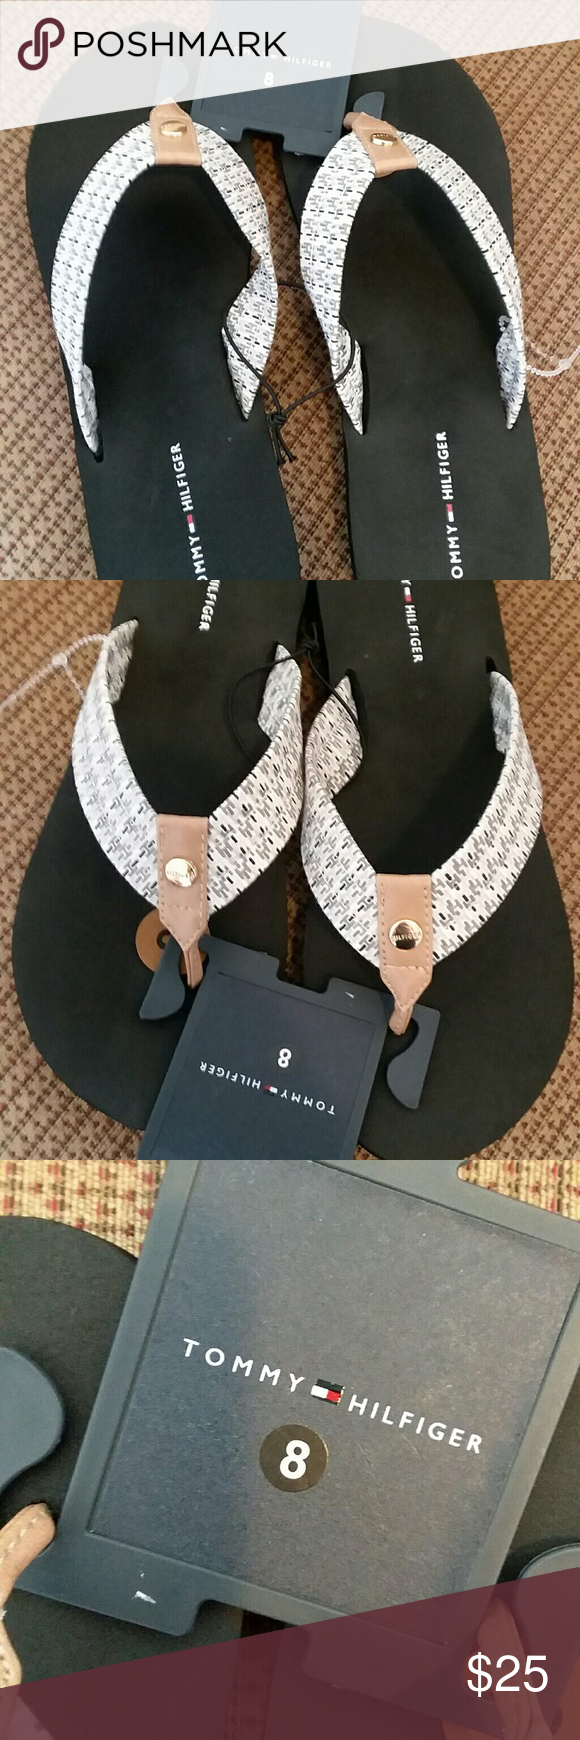 NWT Tommy Hilfiger Sandals NWT Tommy Hilfiger sandals, size 8 Tommy Hilfiger Shoes Sandals